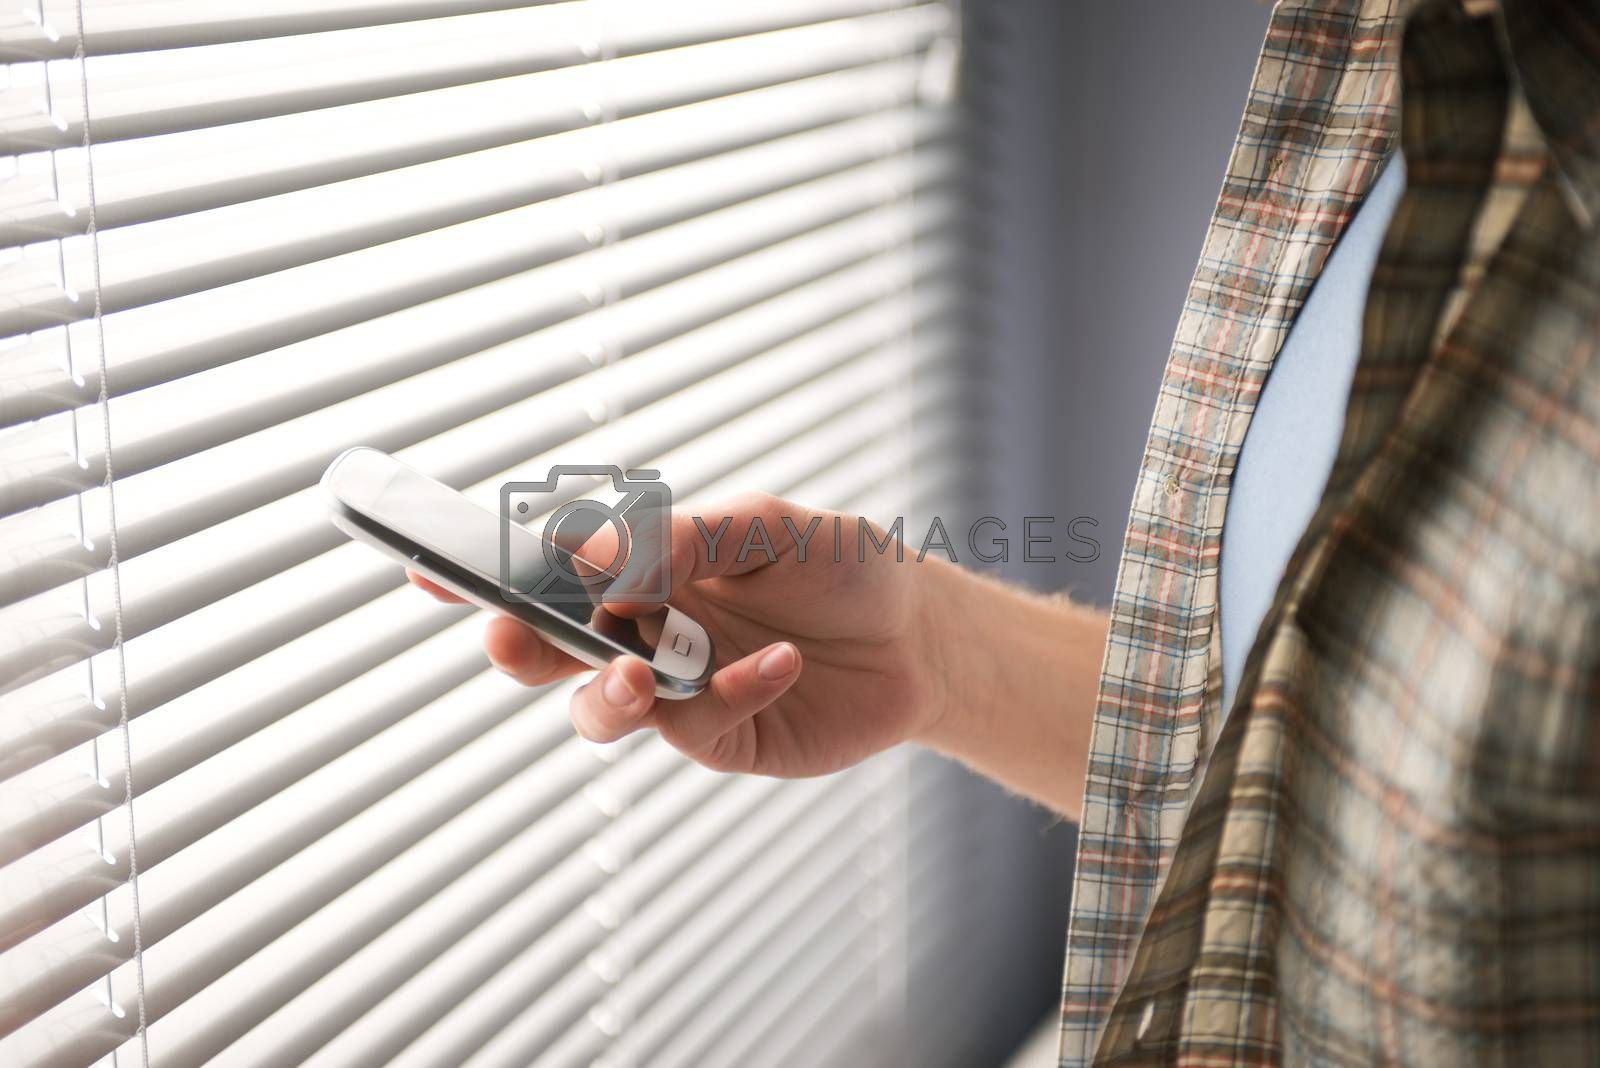 Young man using a smartphone in front of a window.